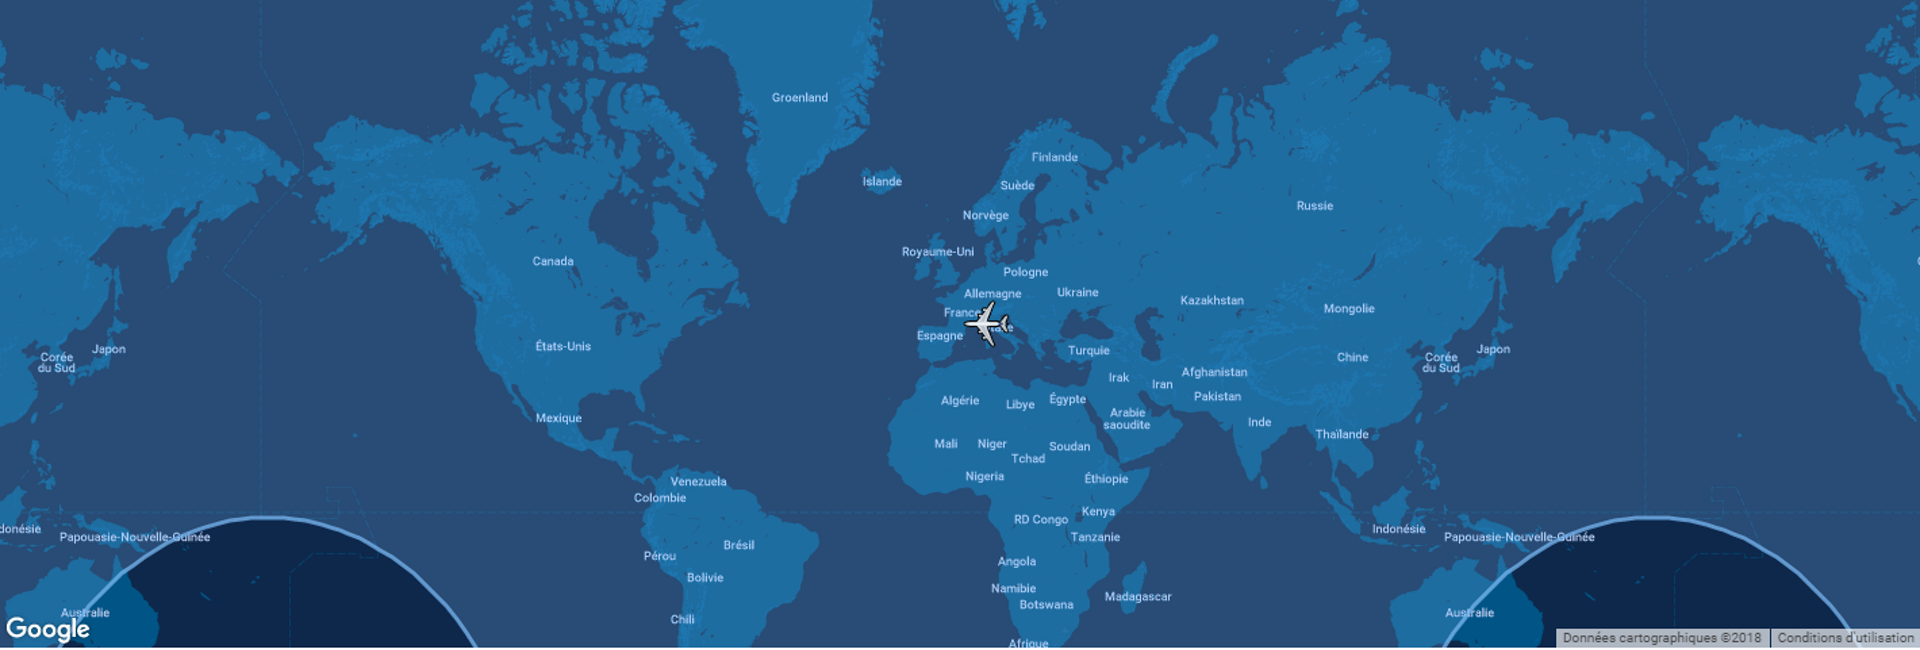 This diagram shows the typical range for Airbus' A330-800 commercial aircraft overlaid on a global map.